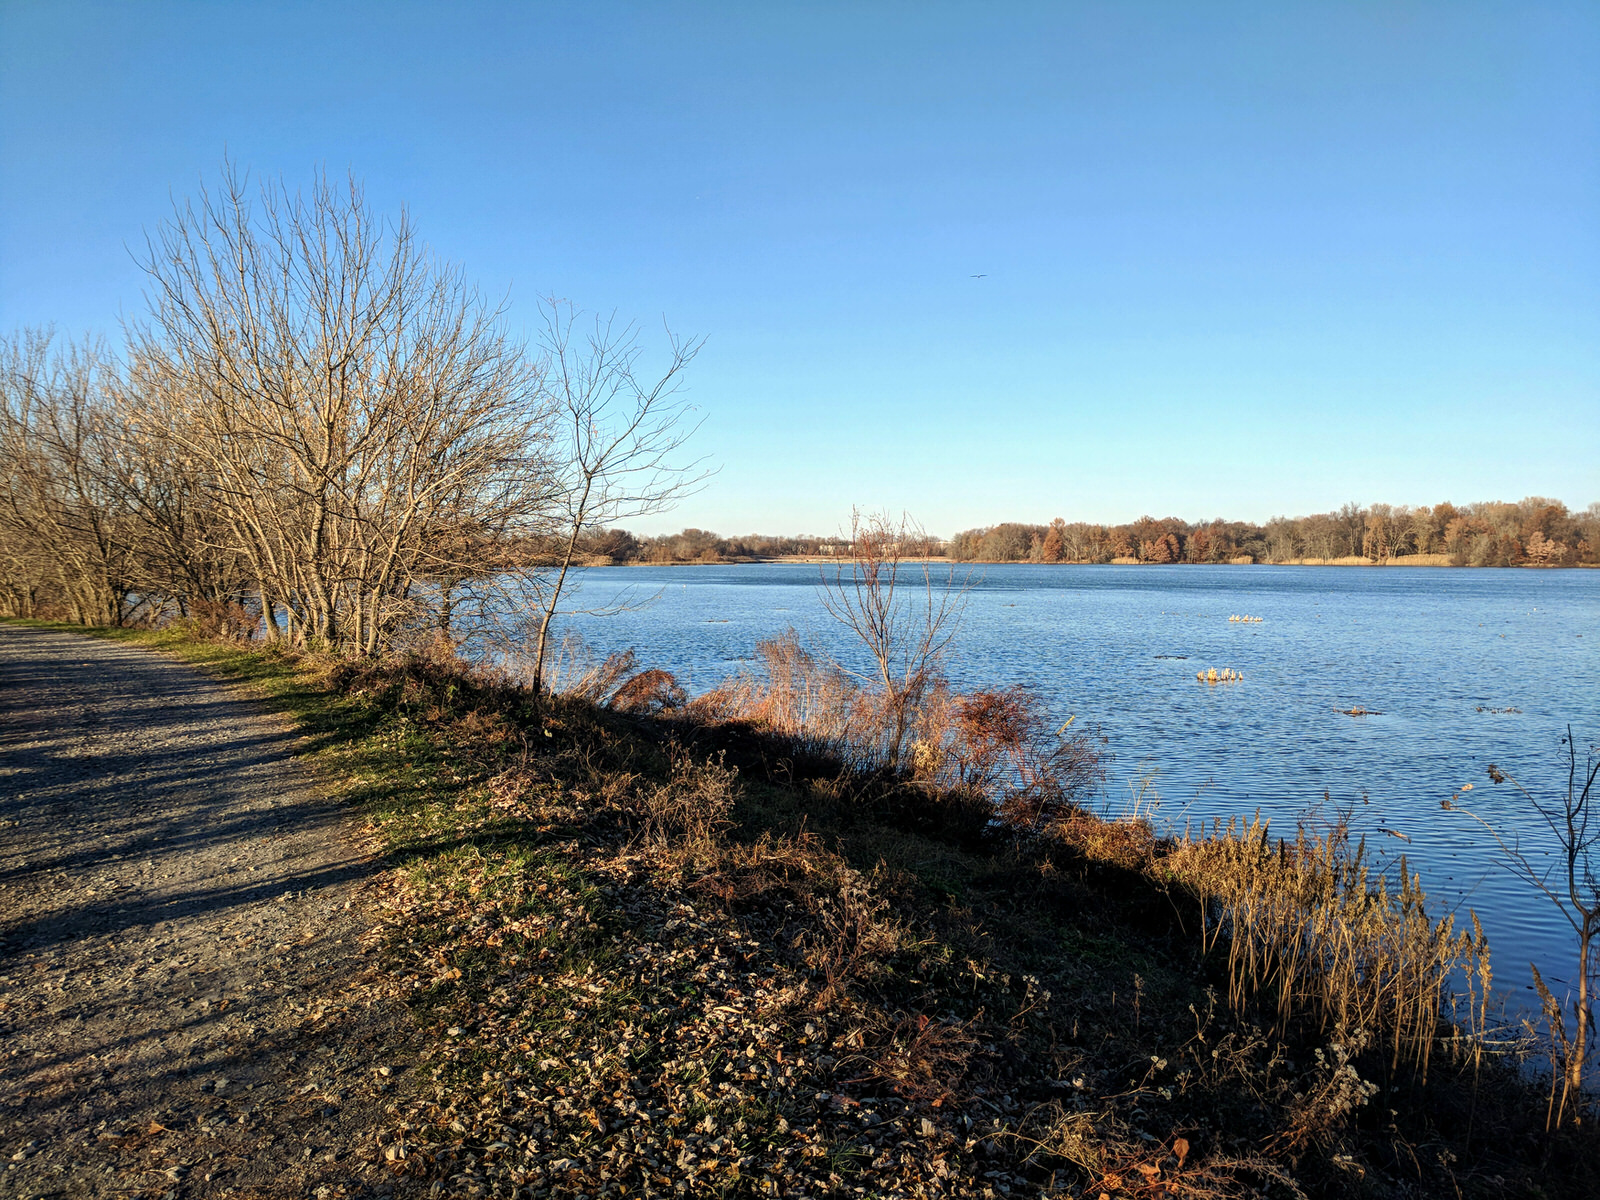 photo: Trail on the west side of the impoundment.  12-1-2017. Photo by Jim Walla.